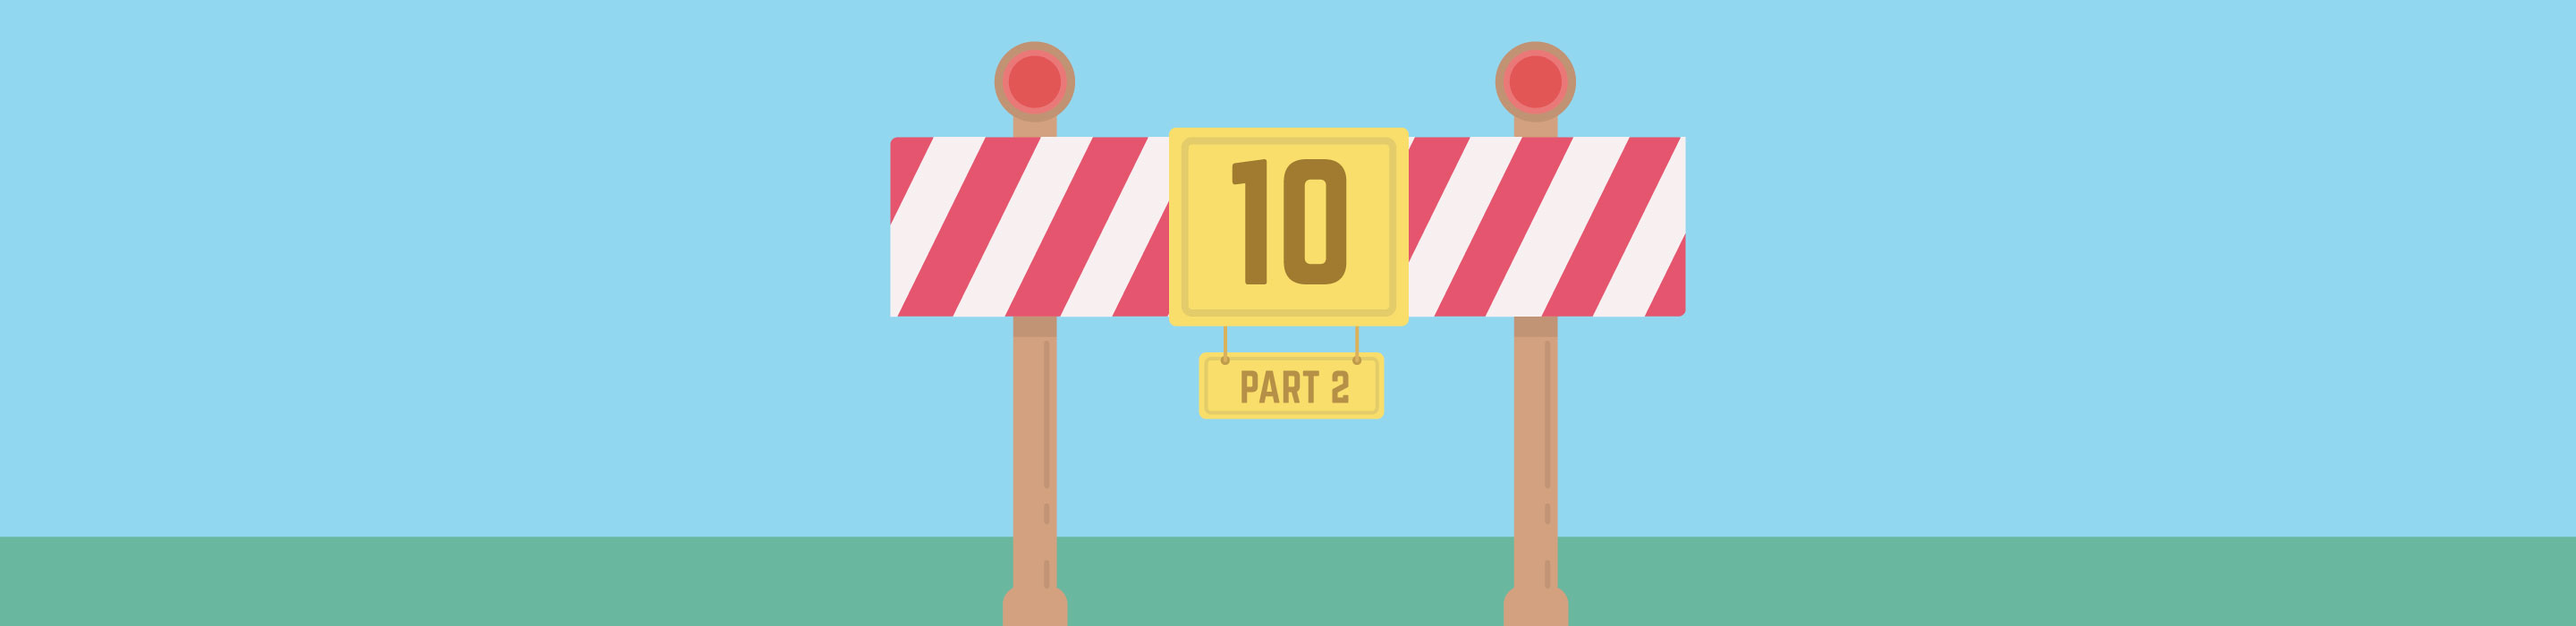 10 Common Barriers to Self-service Success - Part 2